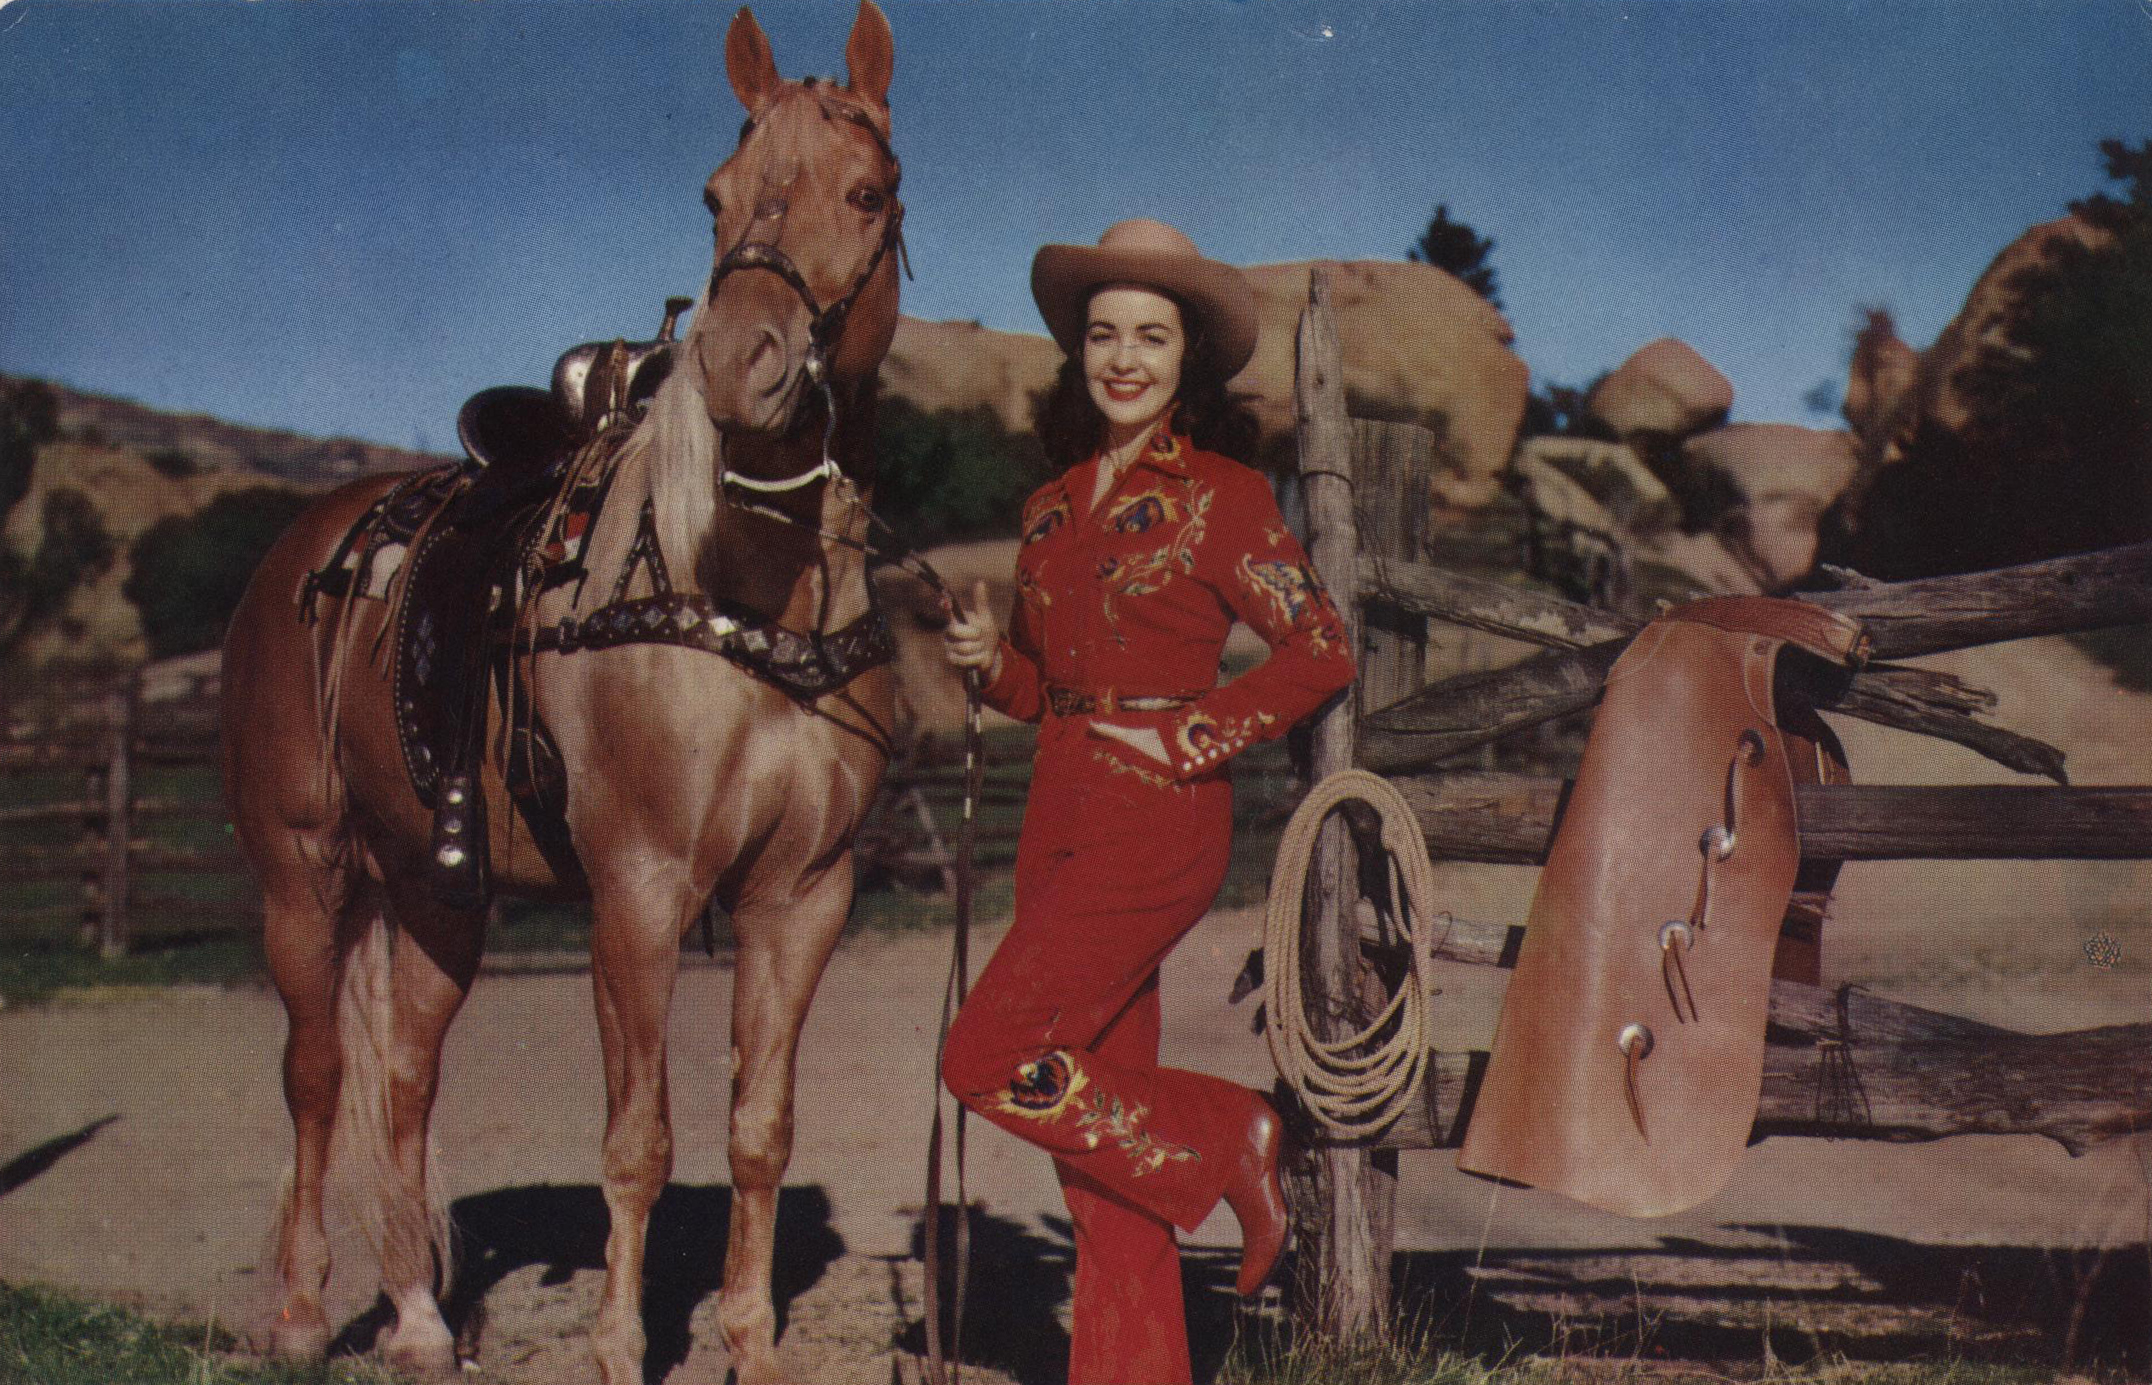 Vintage Cowgirl by amhpics Flickr